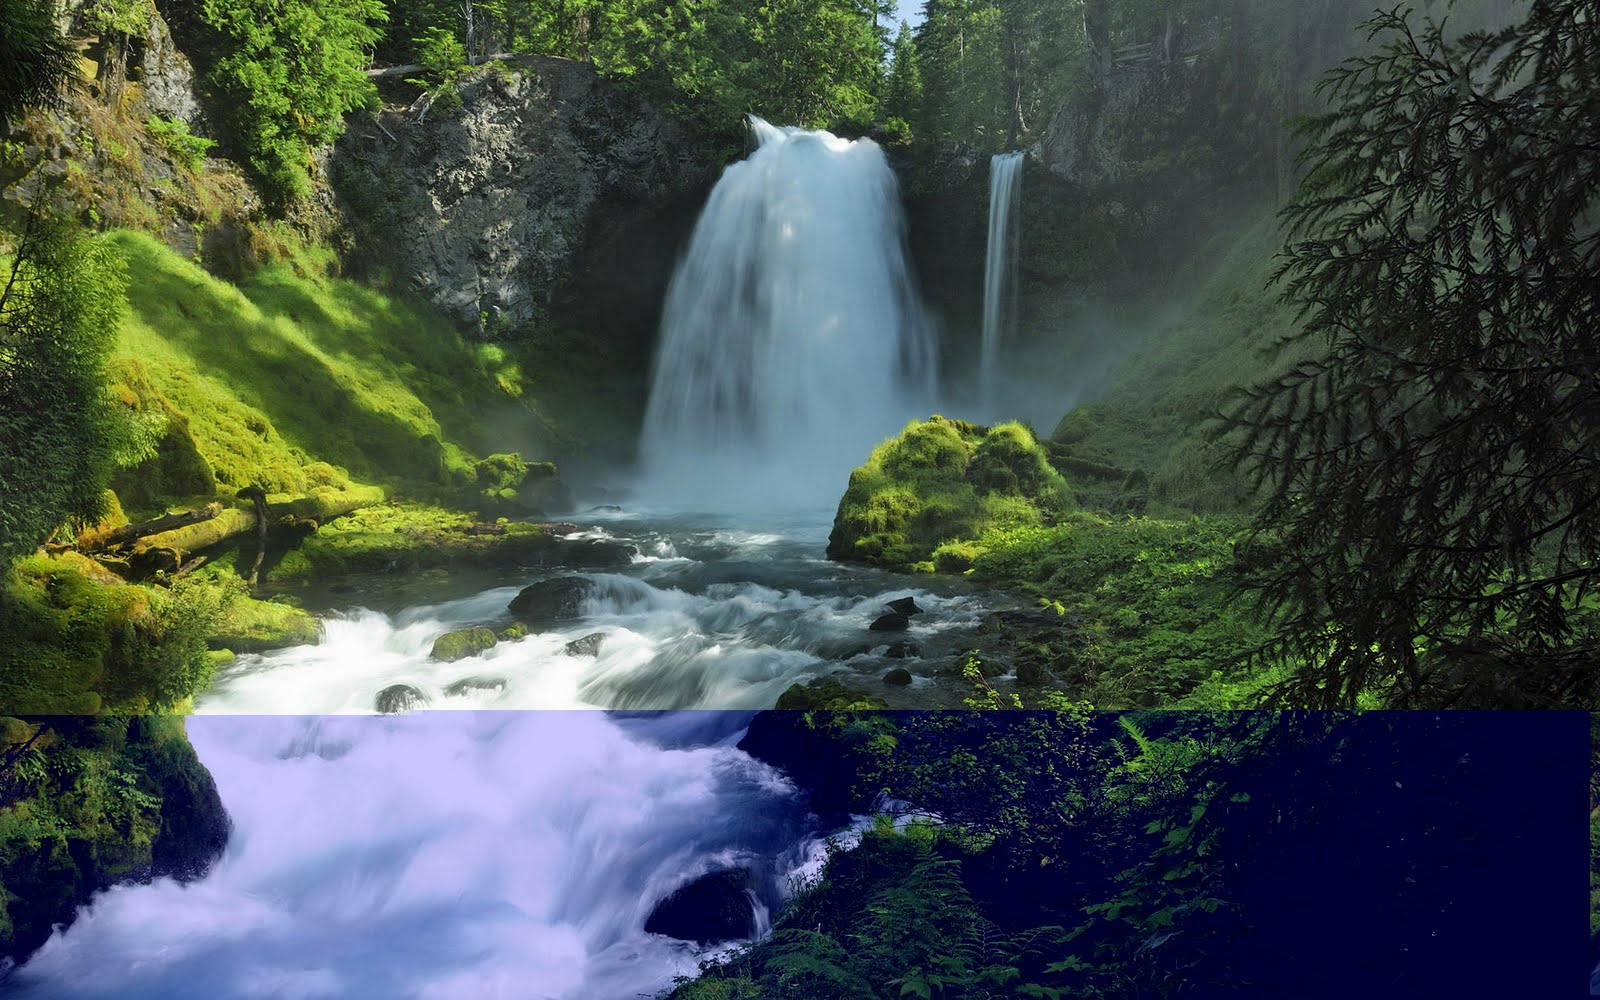 Wallpapers And Backgrounds: Waterfalls HD Wallpaper